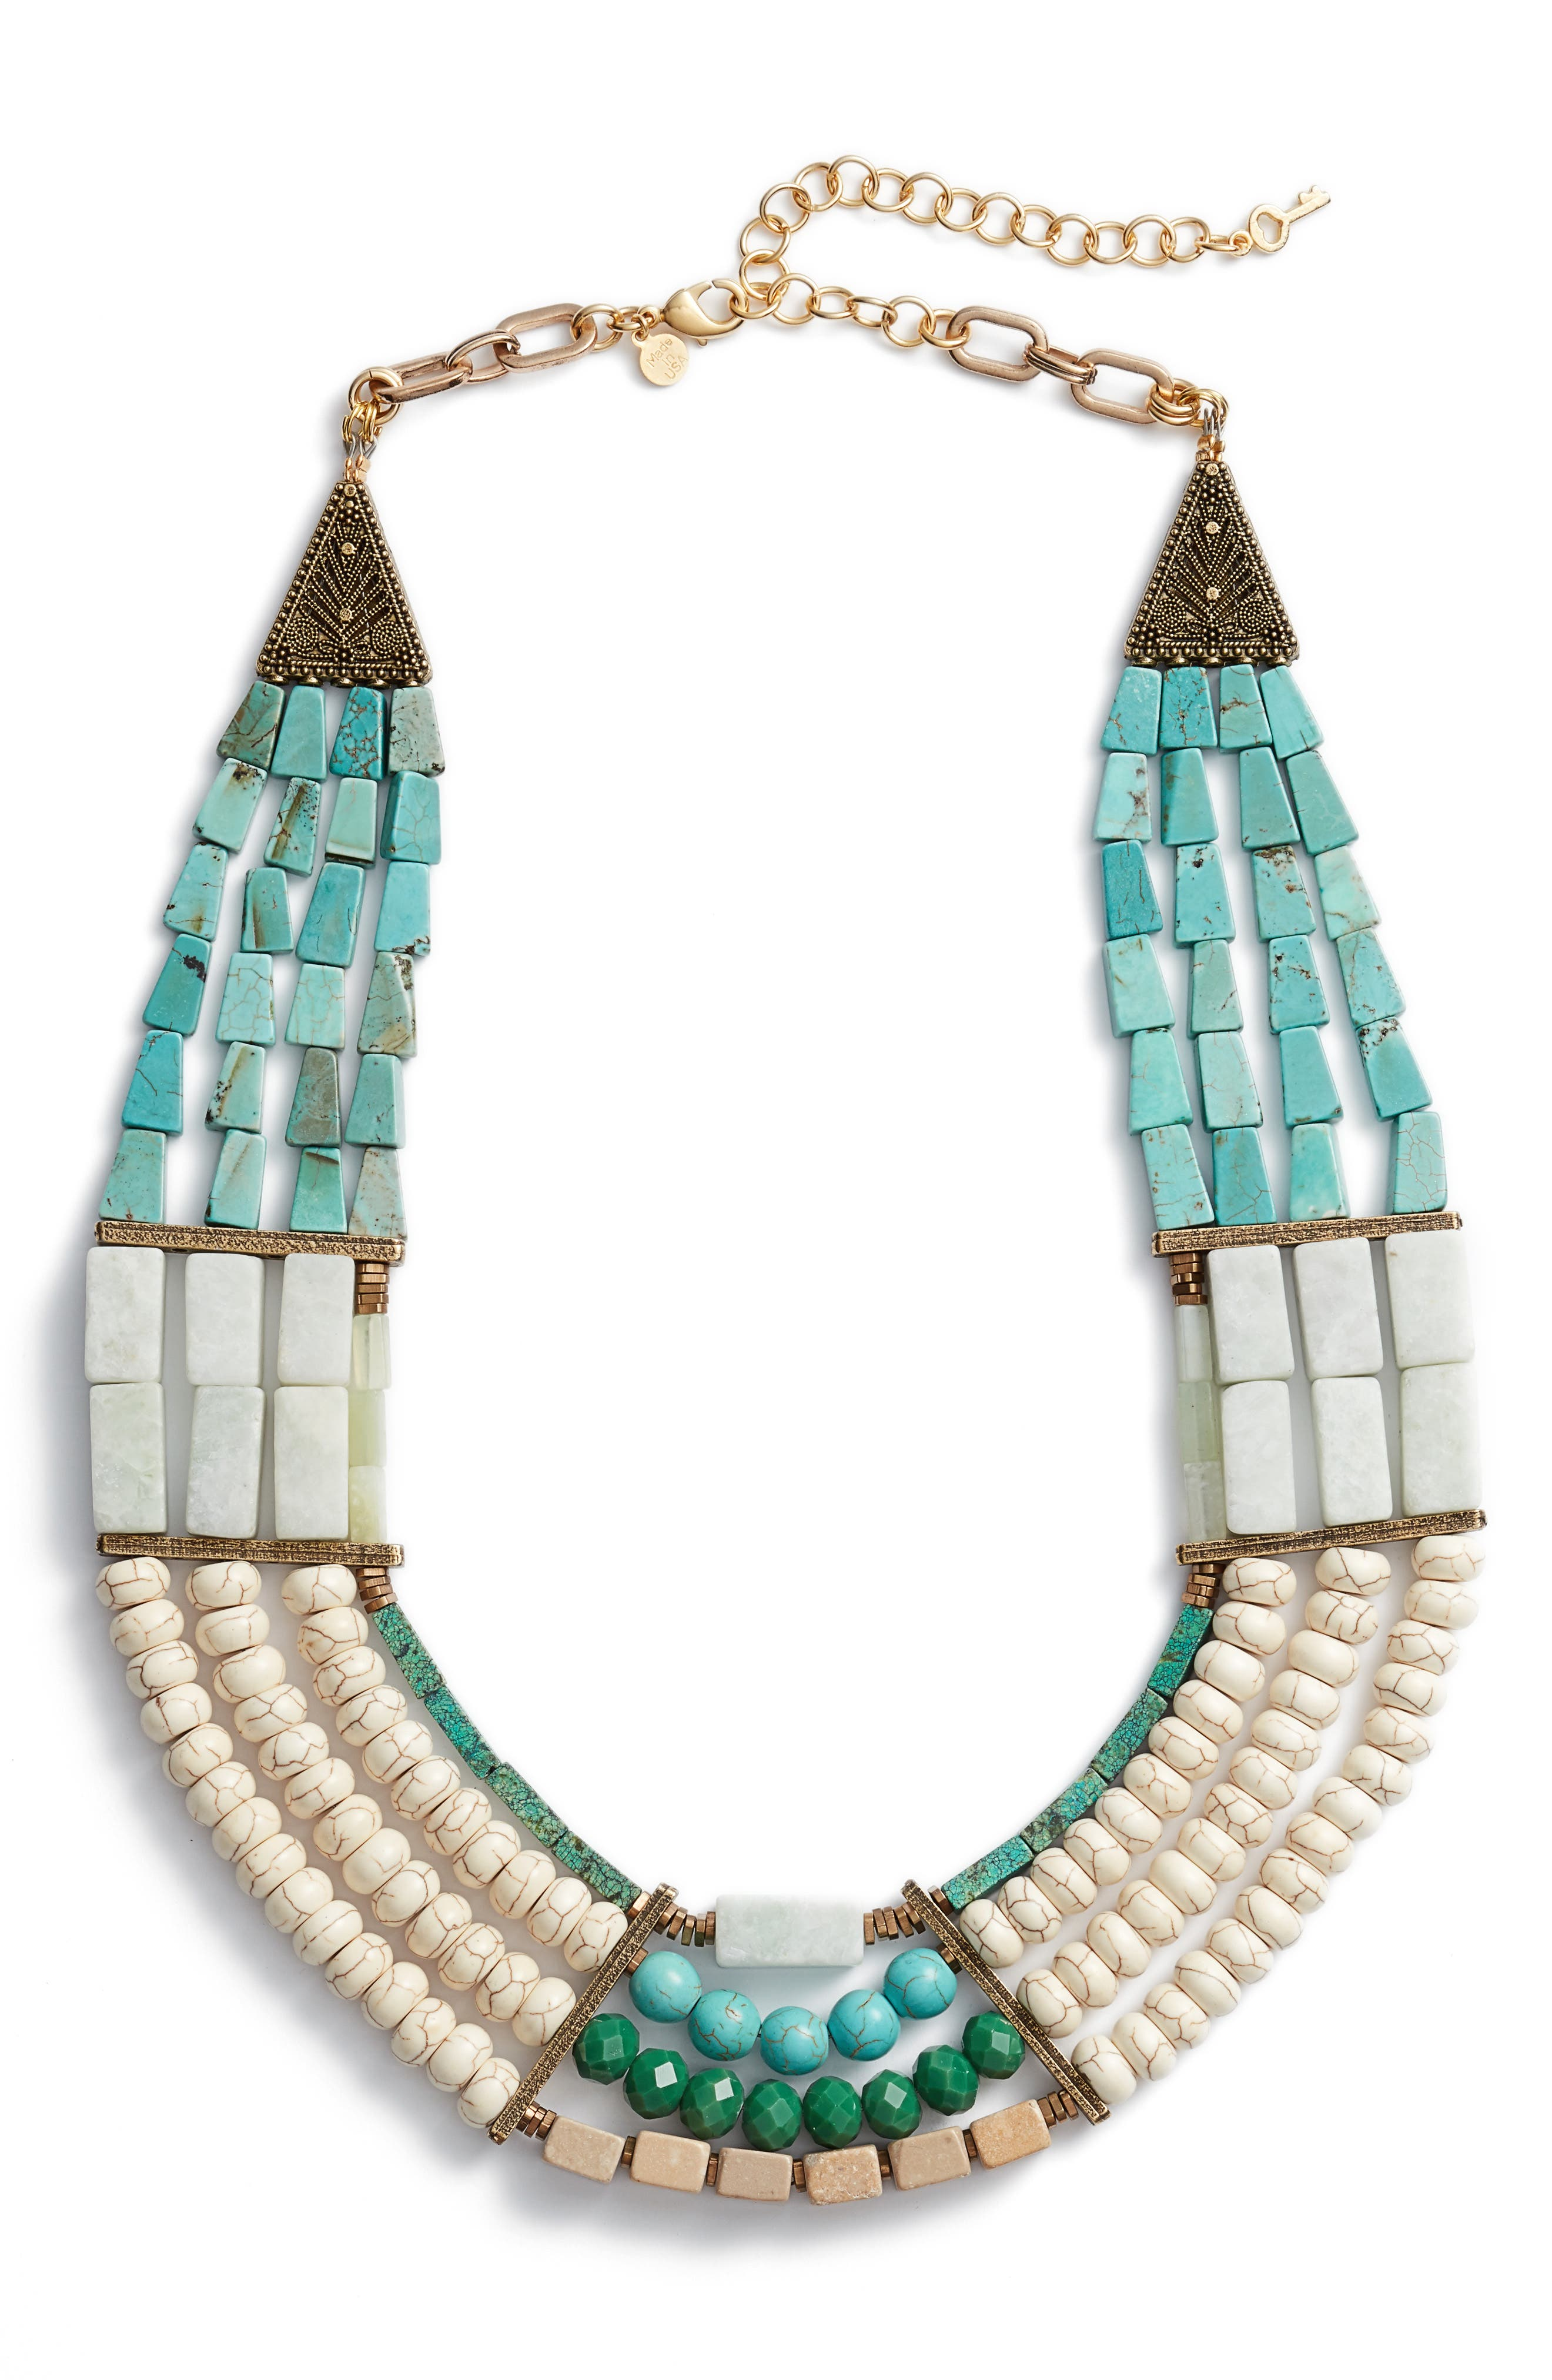 Priscilla 4-Row Statement Necklace,                             Main thumbnail 1, color,                             Turquoise